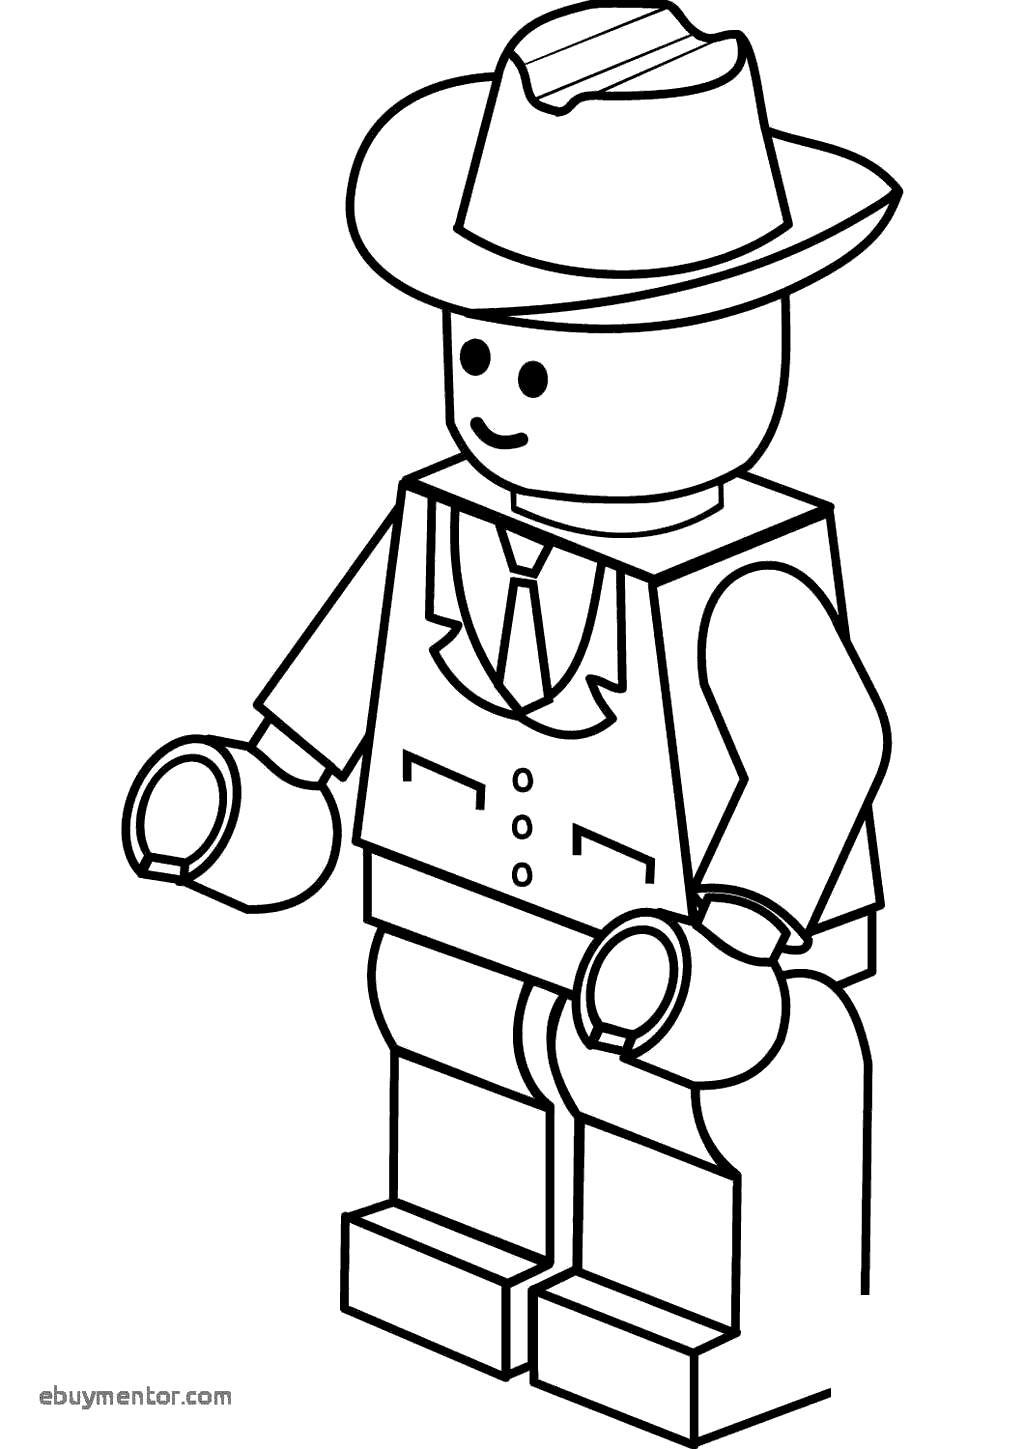 Cowboy Coloring Pages Lego Sheets - Free Printable Coloring Pages